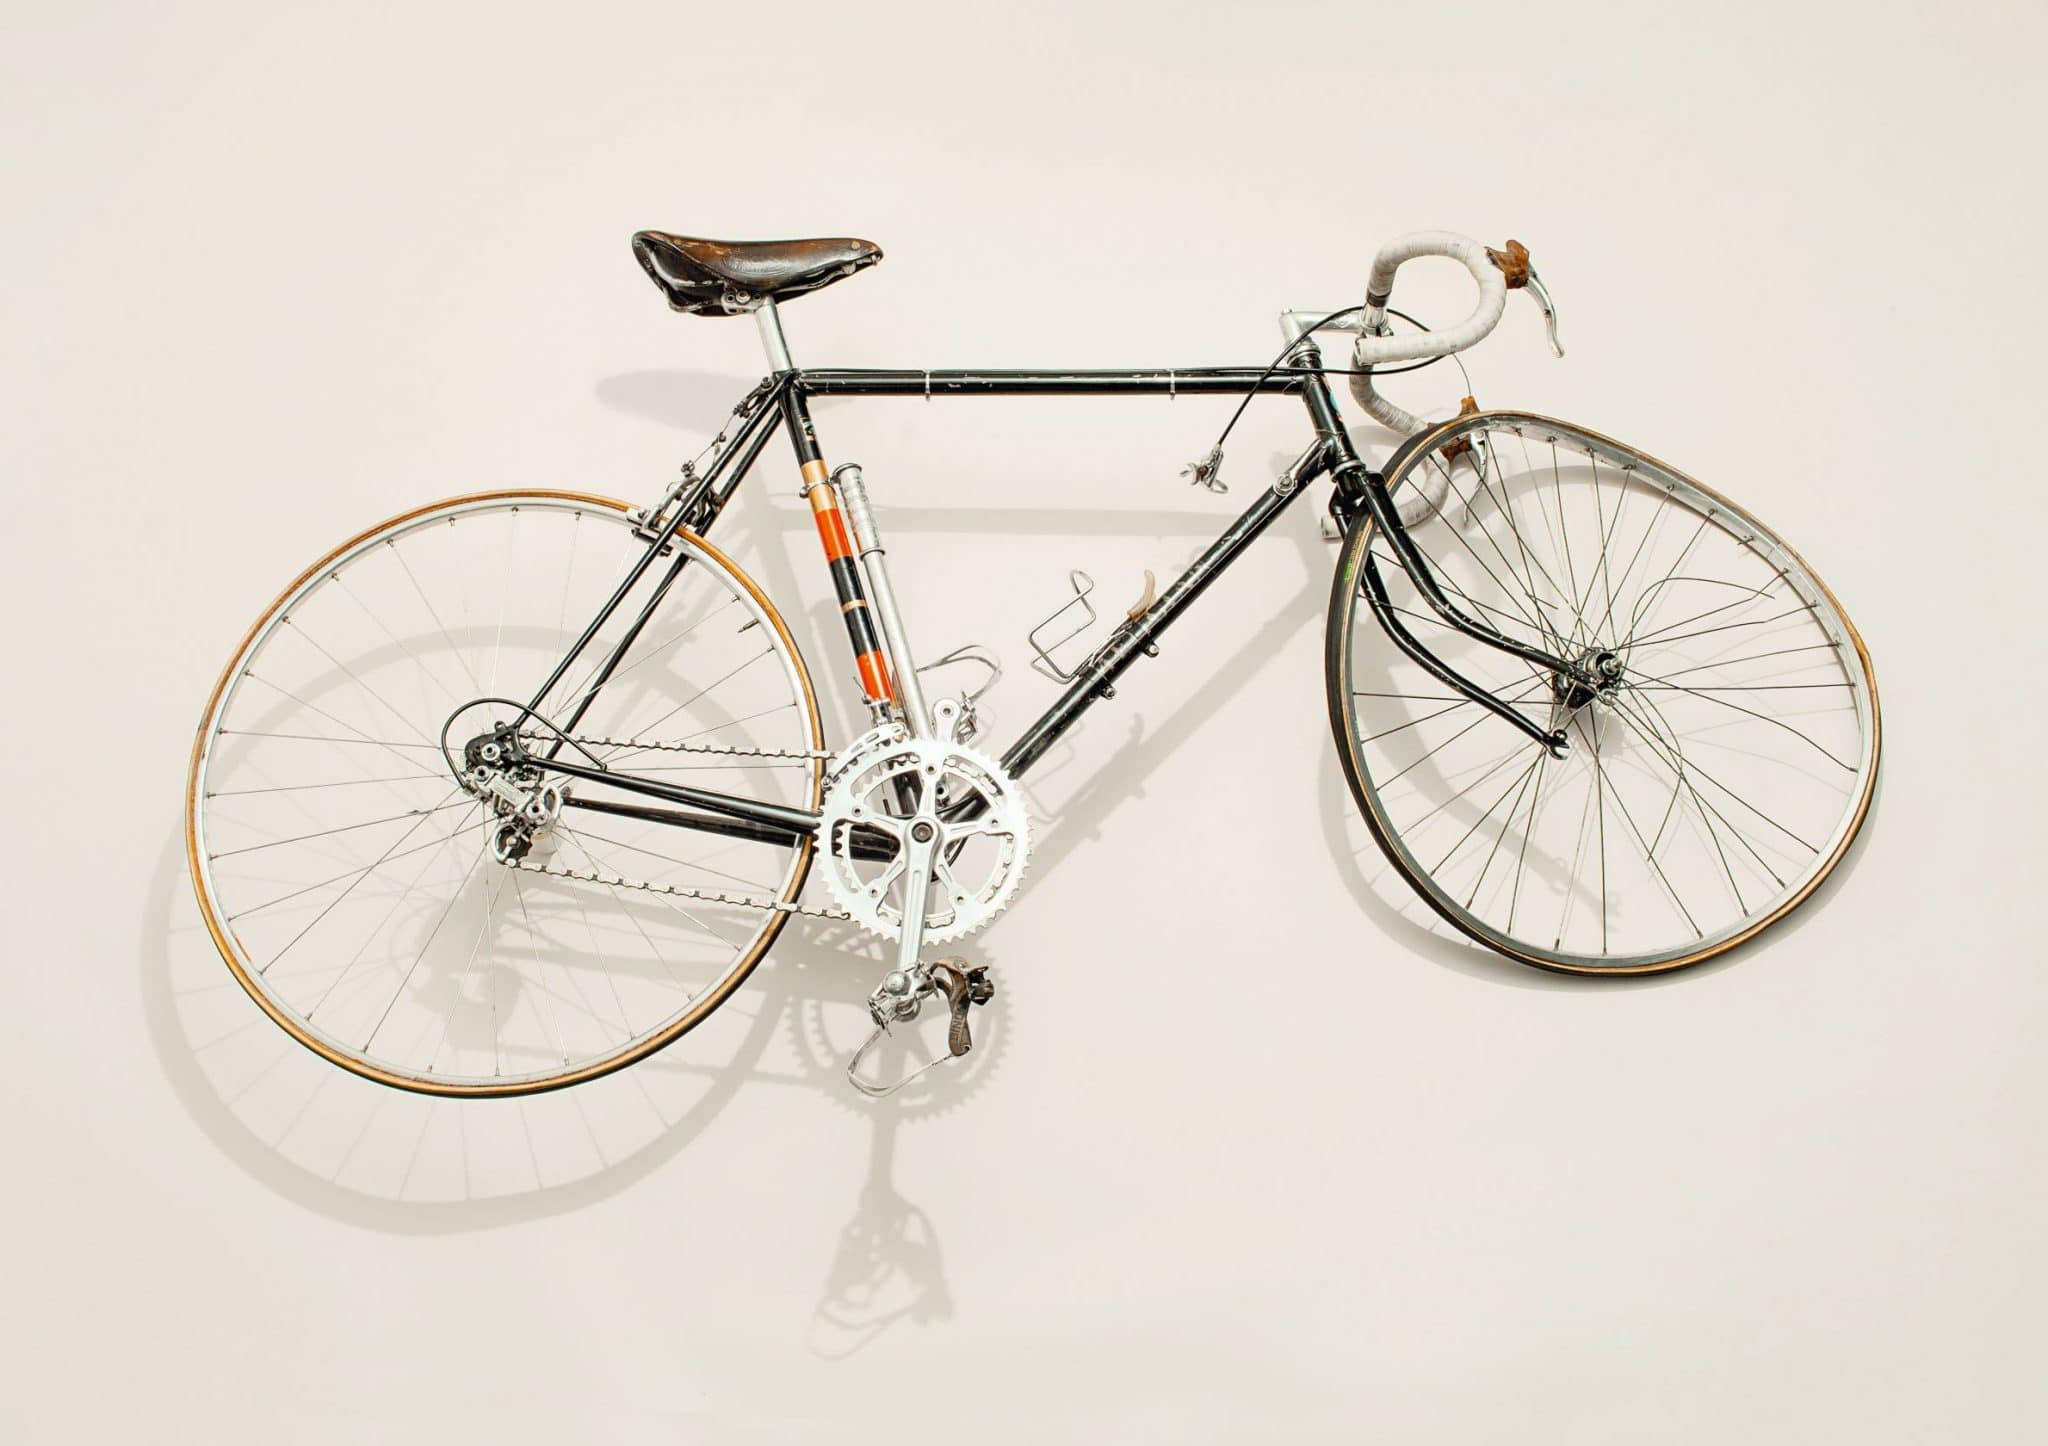 Paul Smith Phaidon crashed bike